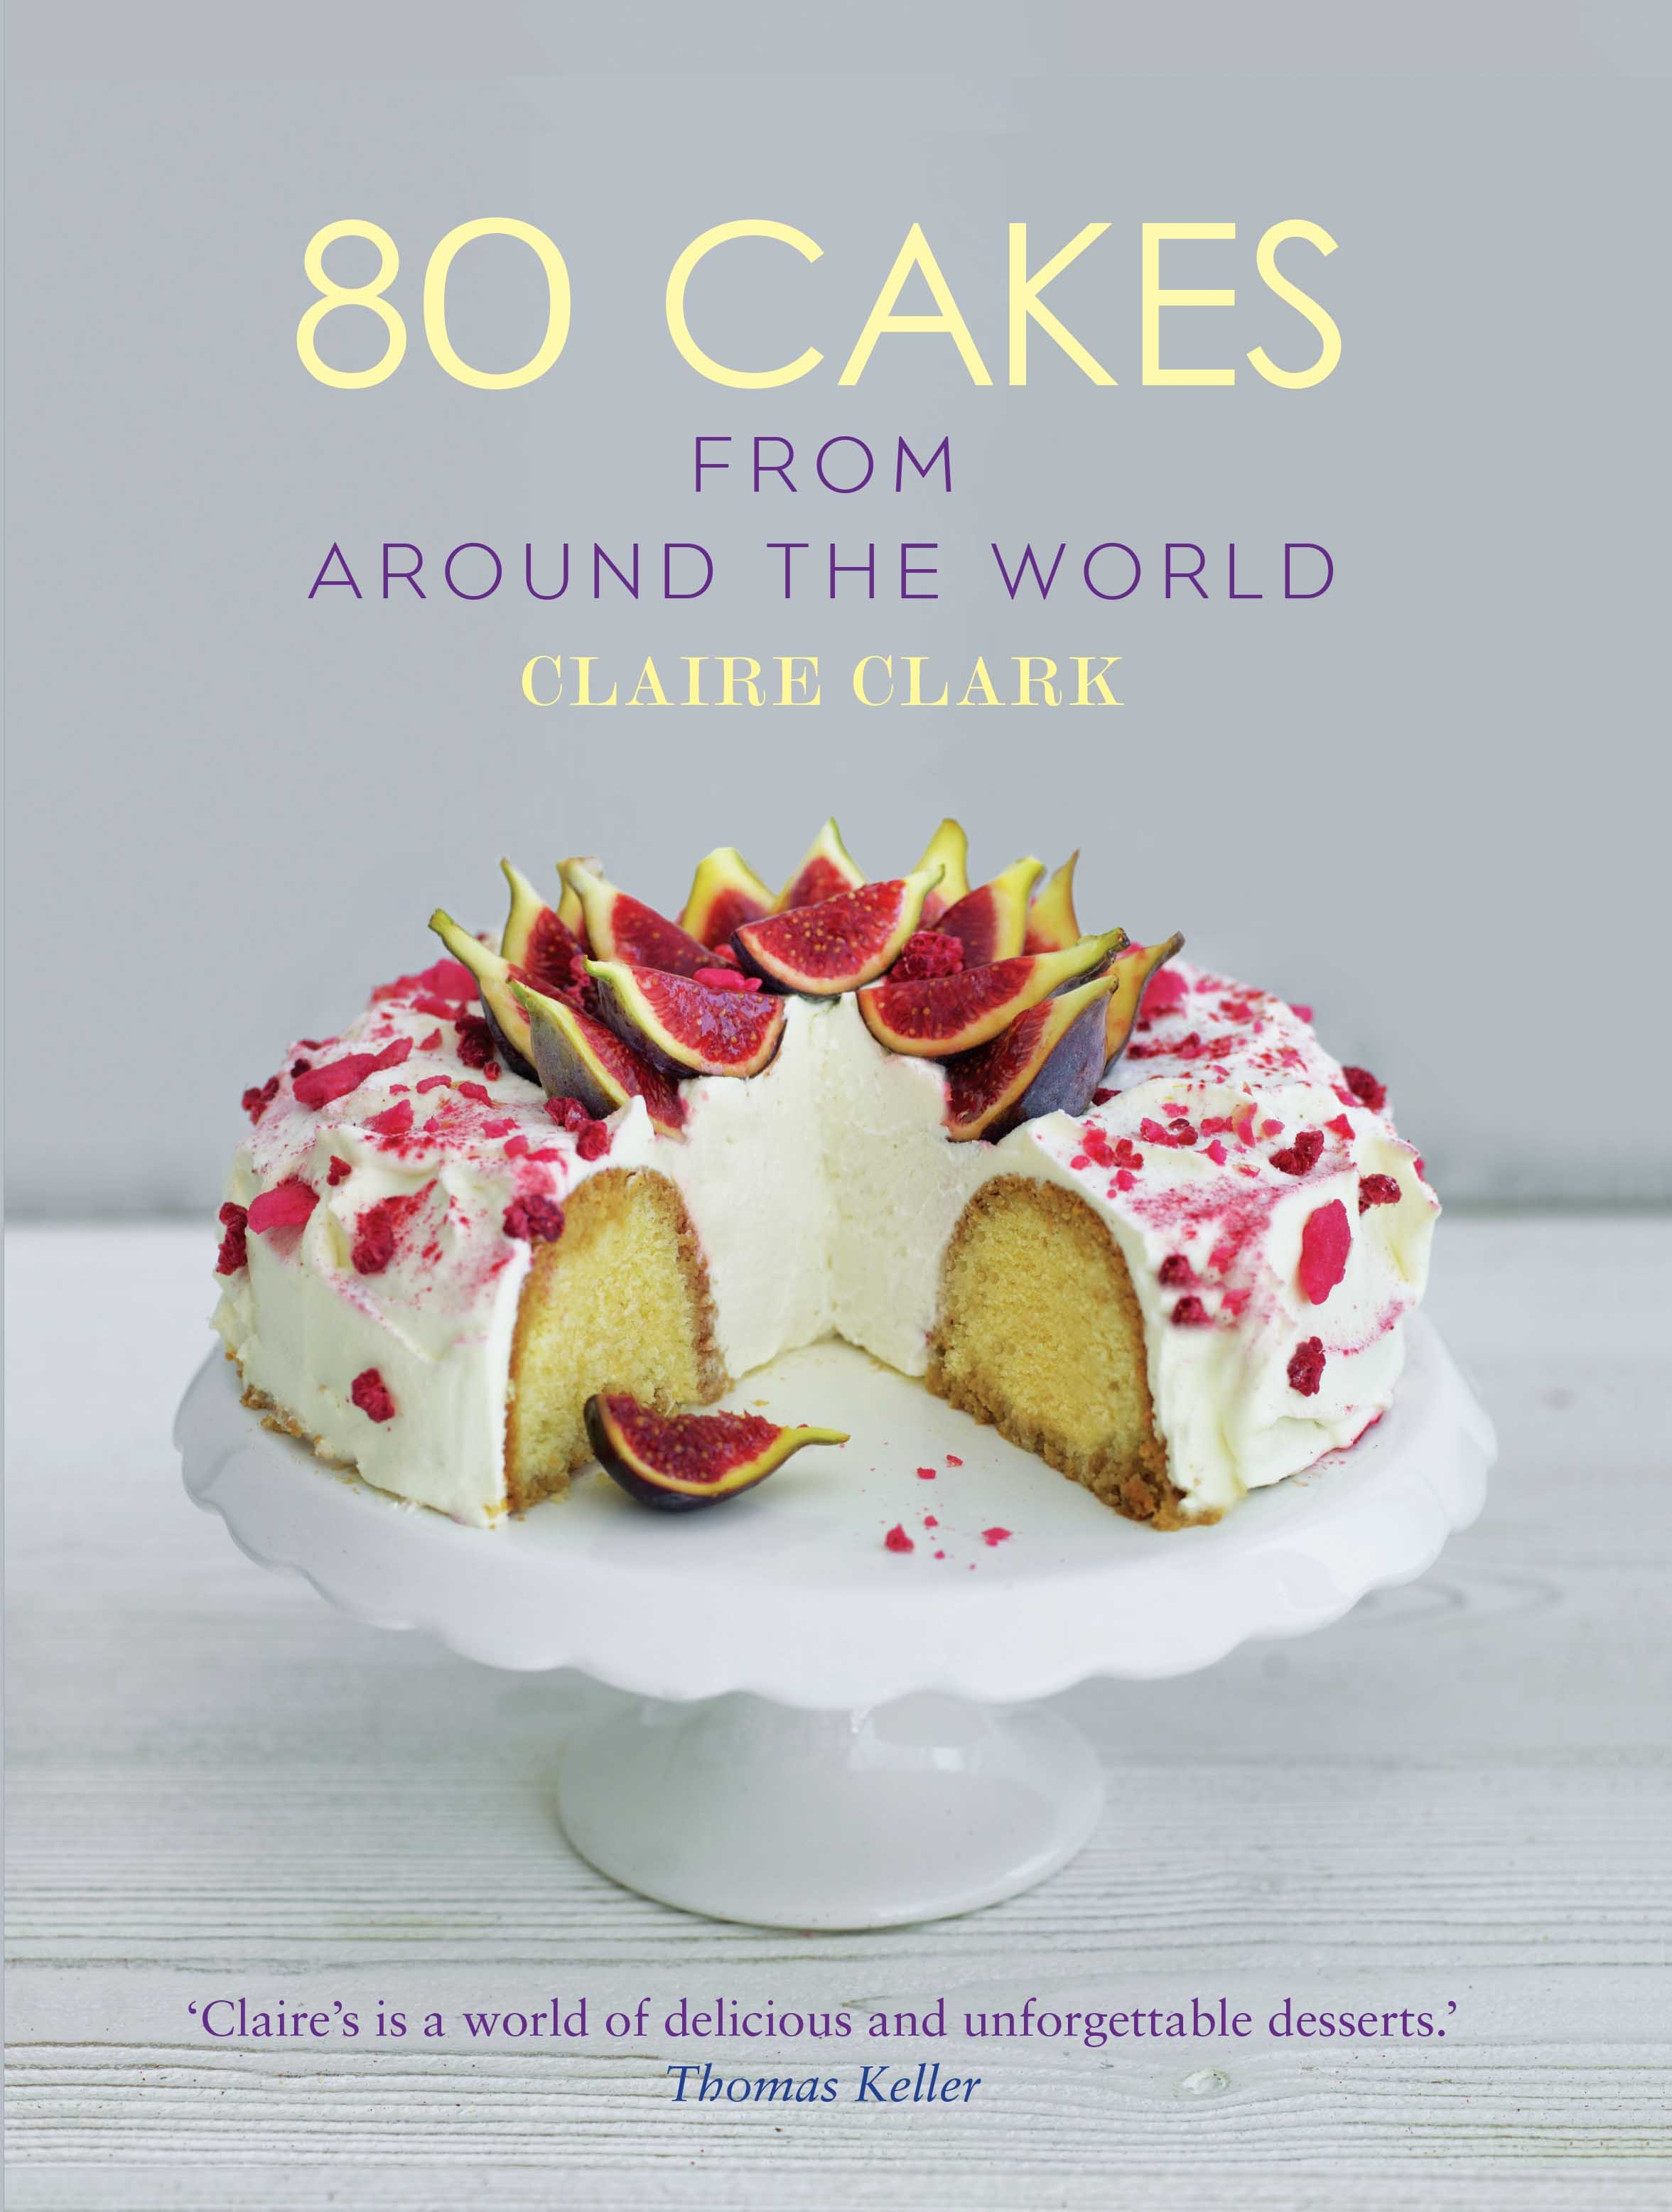 80 Cakes Around the World